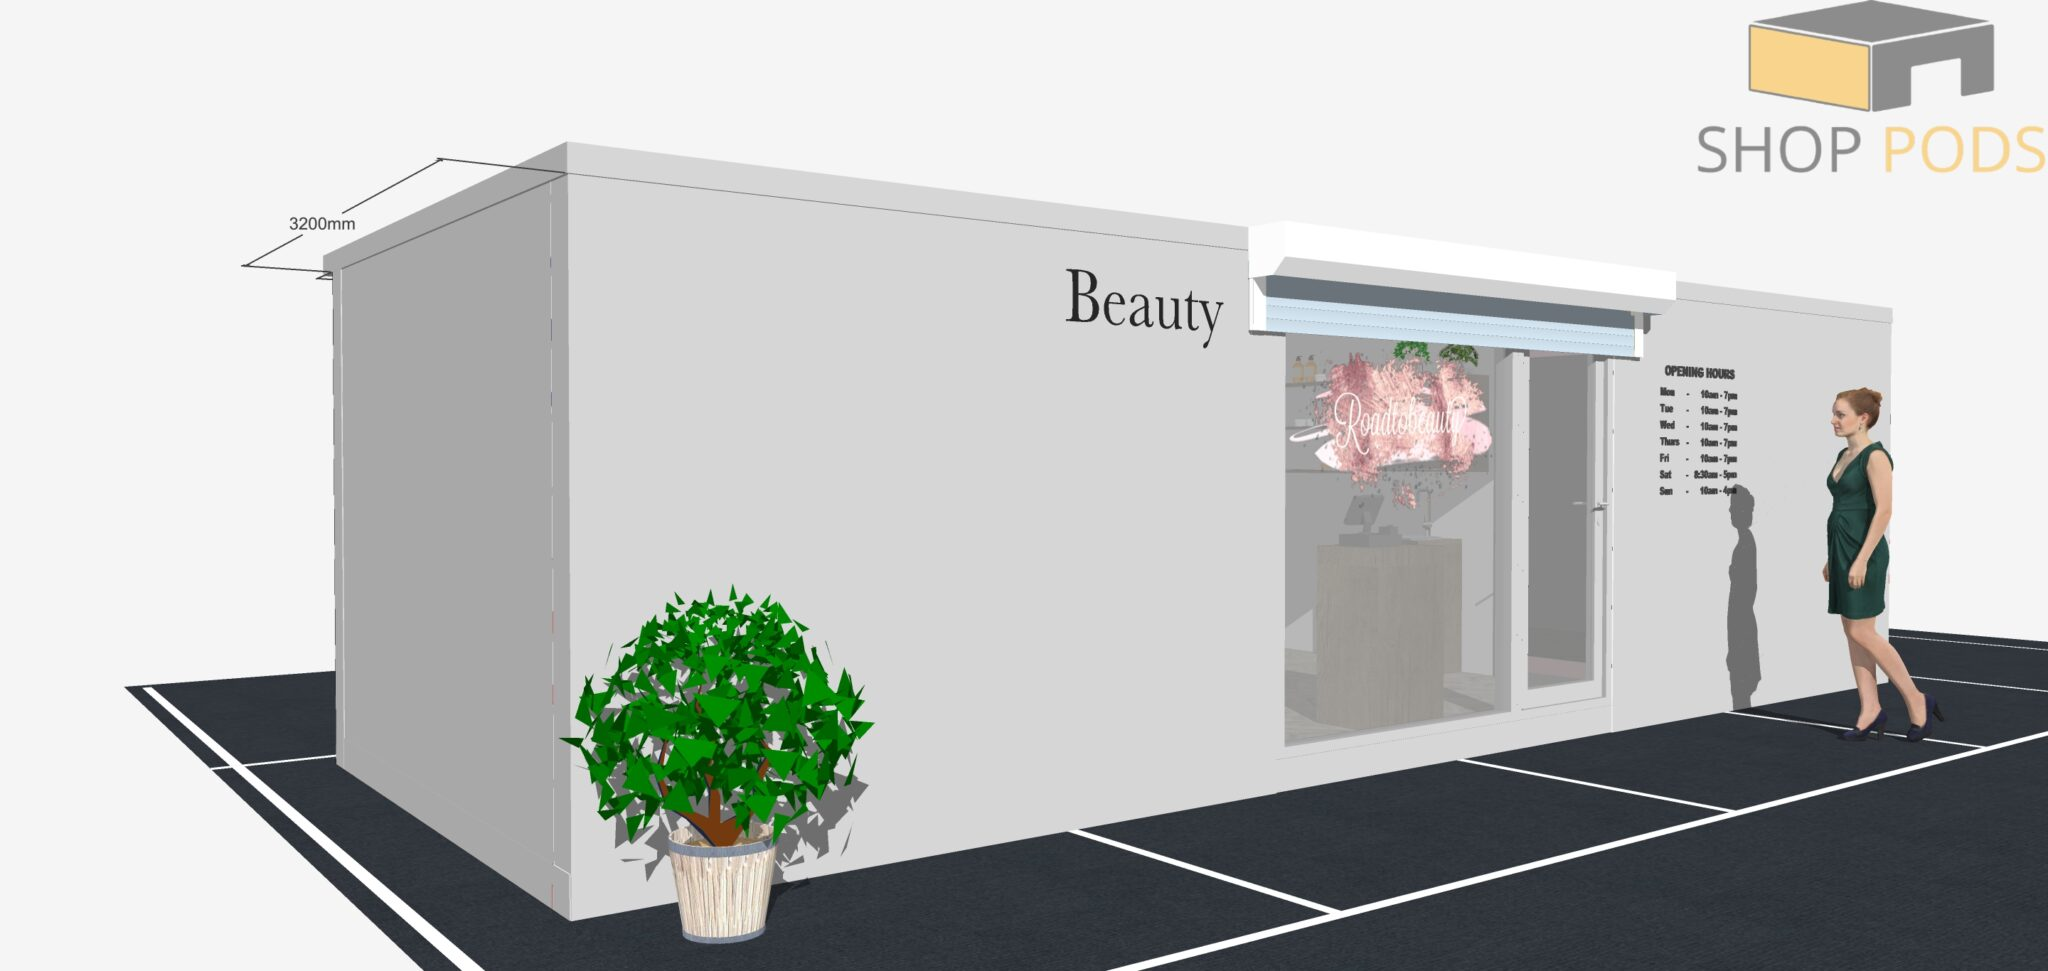 Road to Beauty 9m x 3.2m POD